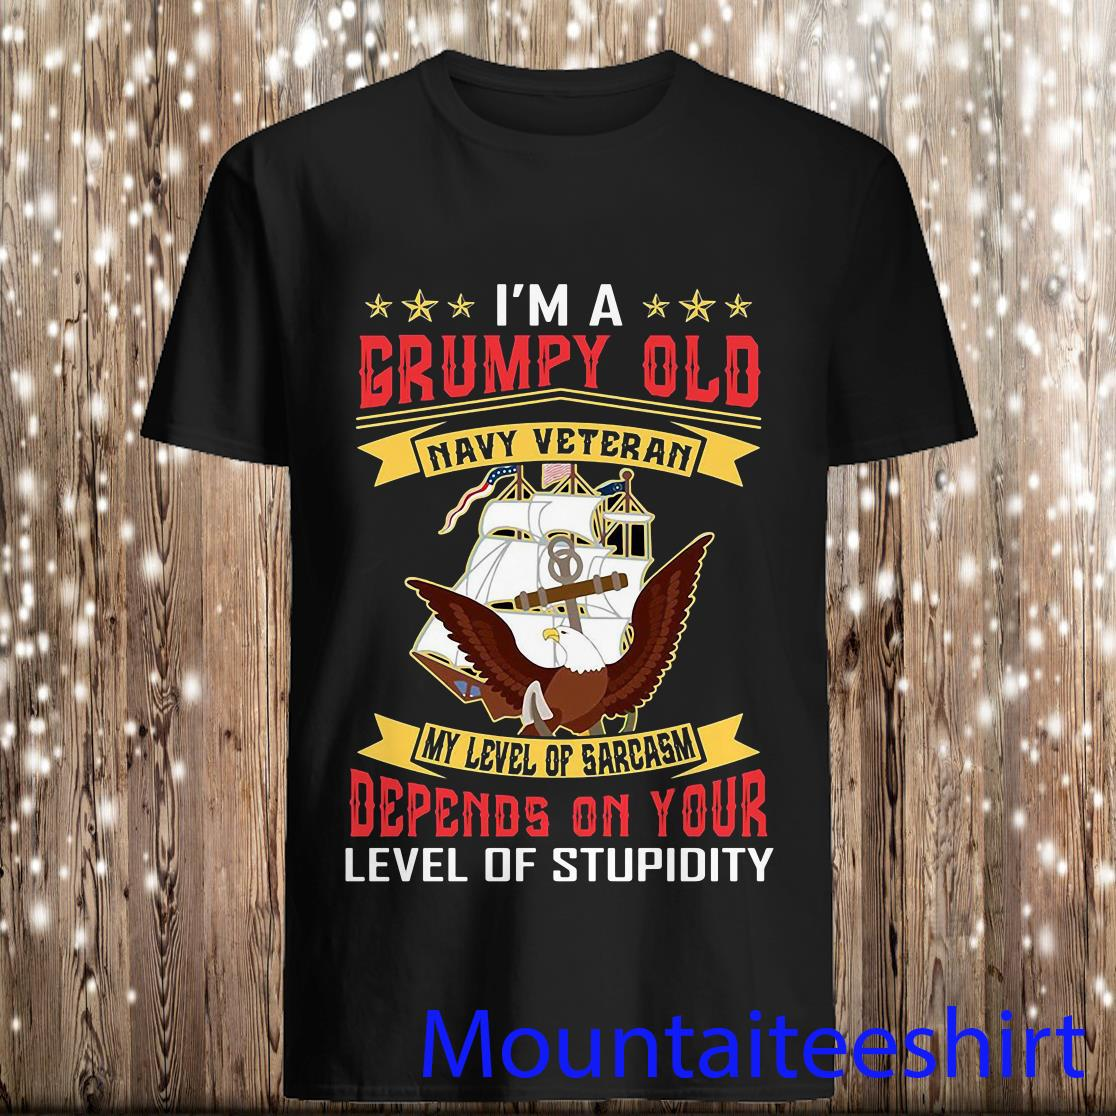 I'm A Grumpy Old Navy Veteran My Level of Sarcasm Depends on Your Level of Stupidity Shirt